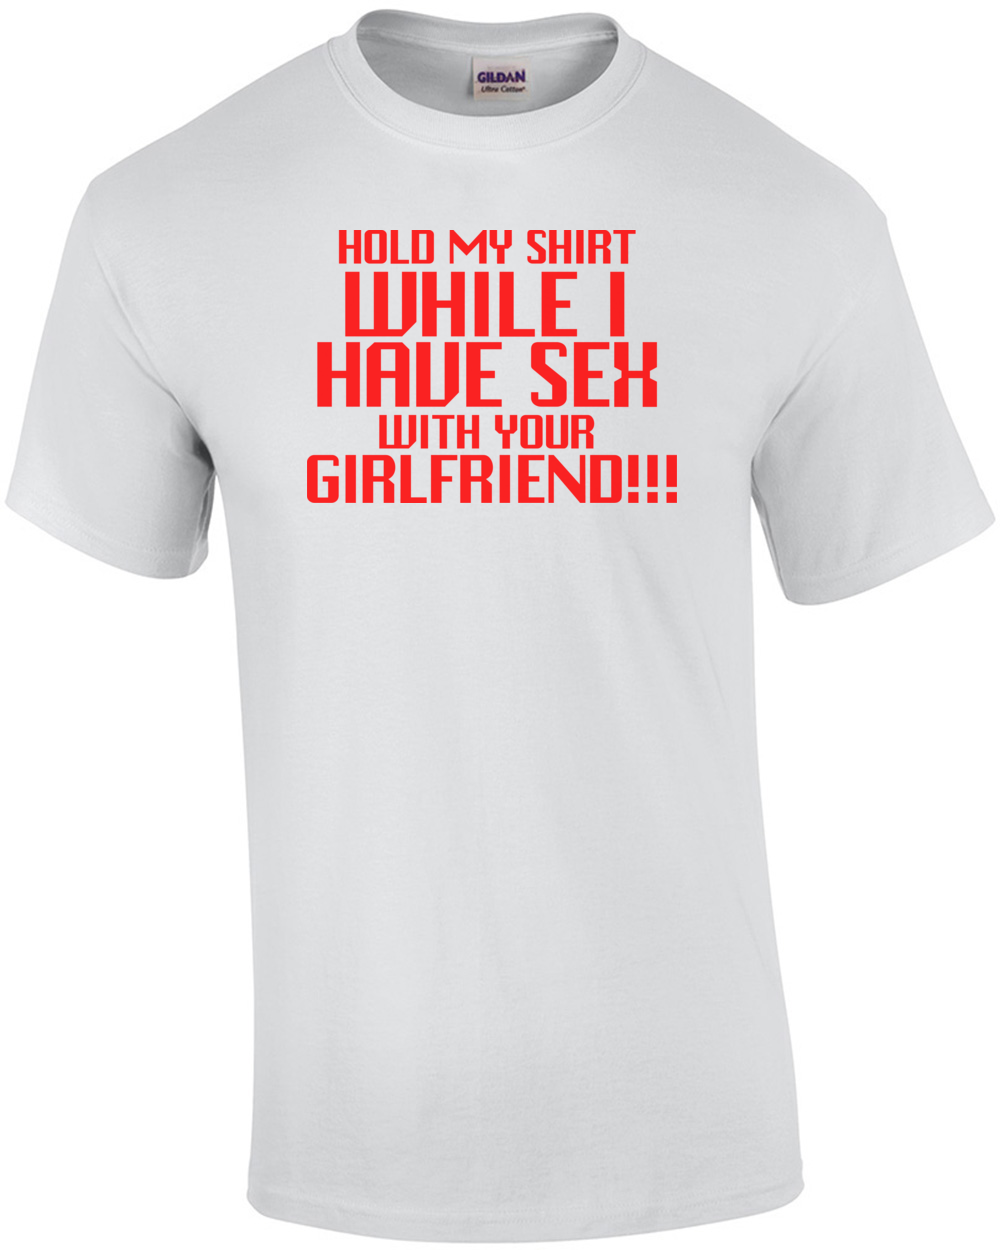 Hold My Shirt While Have Sex With Your Girlfriend Funny Shirt